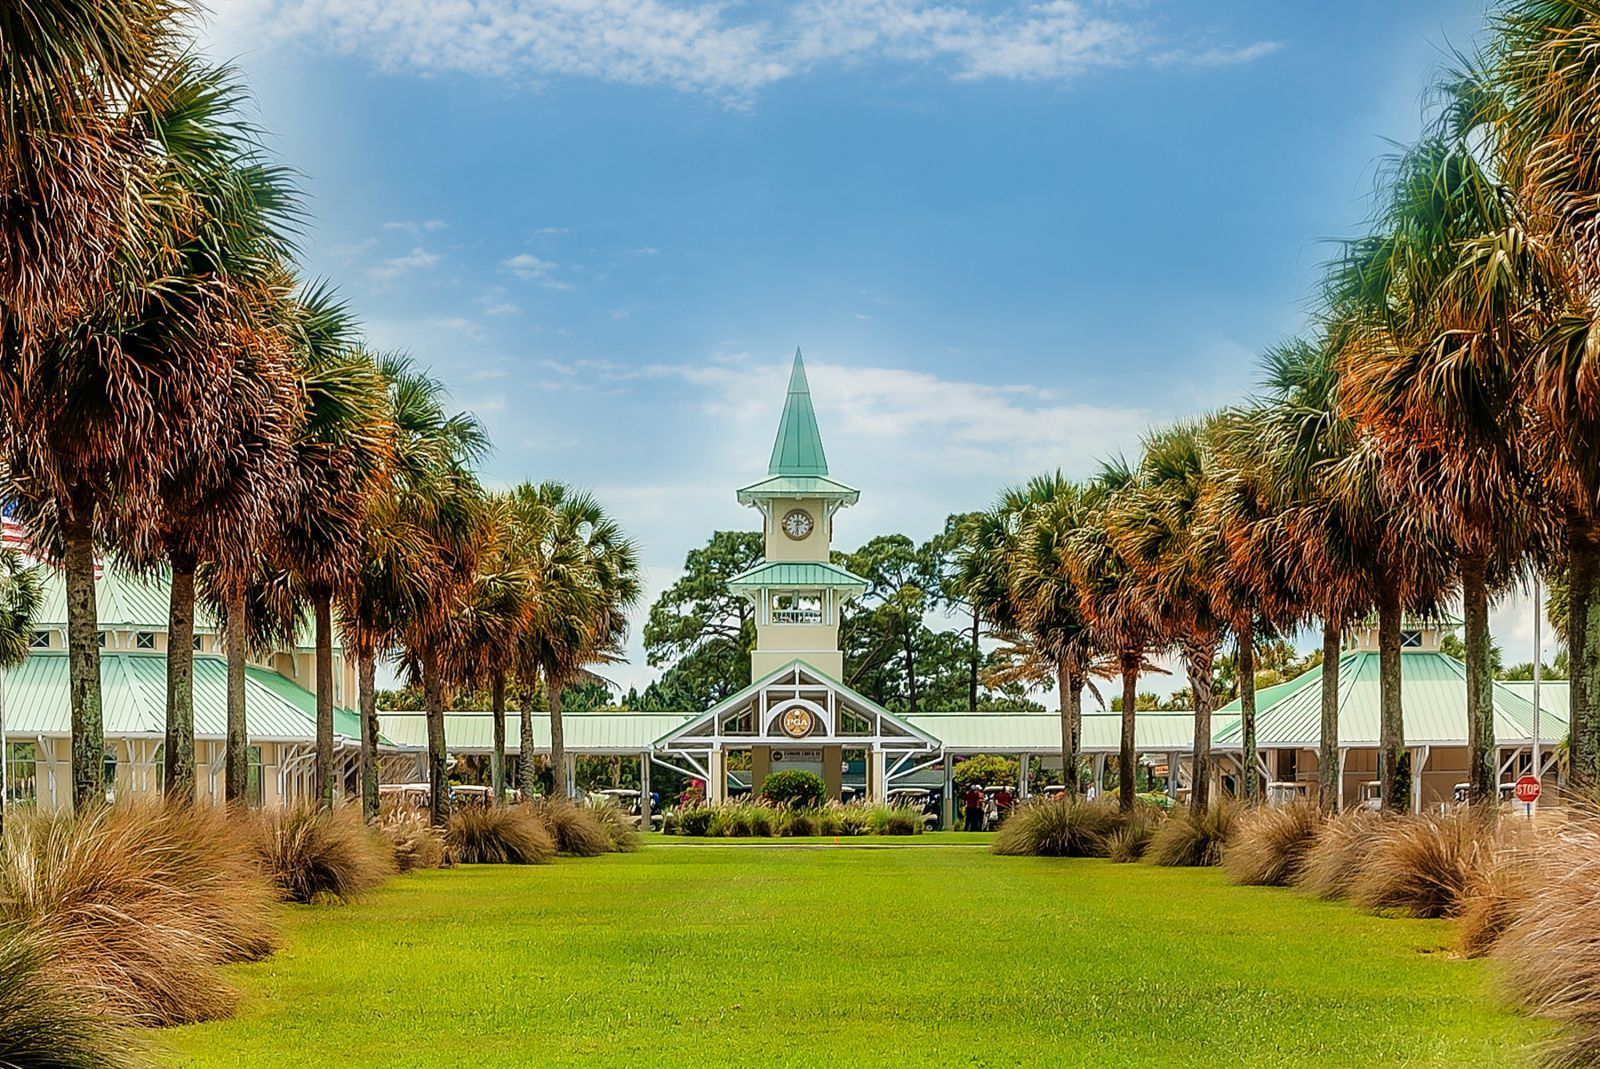 Search Current Inventory Of PGA Village Verano Port St LucieListing  DetailsGolf View Home For Sale In PGA Kiawah Trace, Port St Lucie, FL 3498